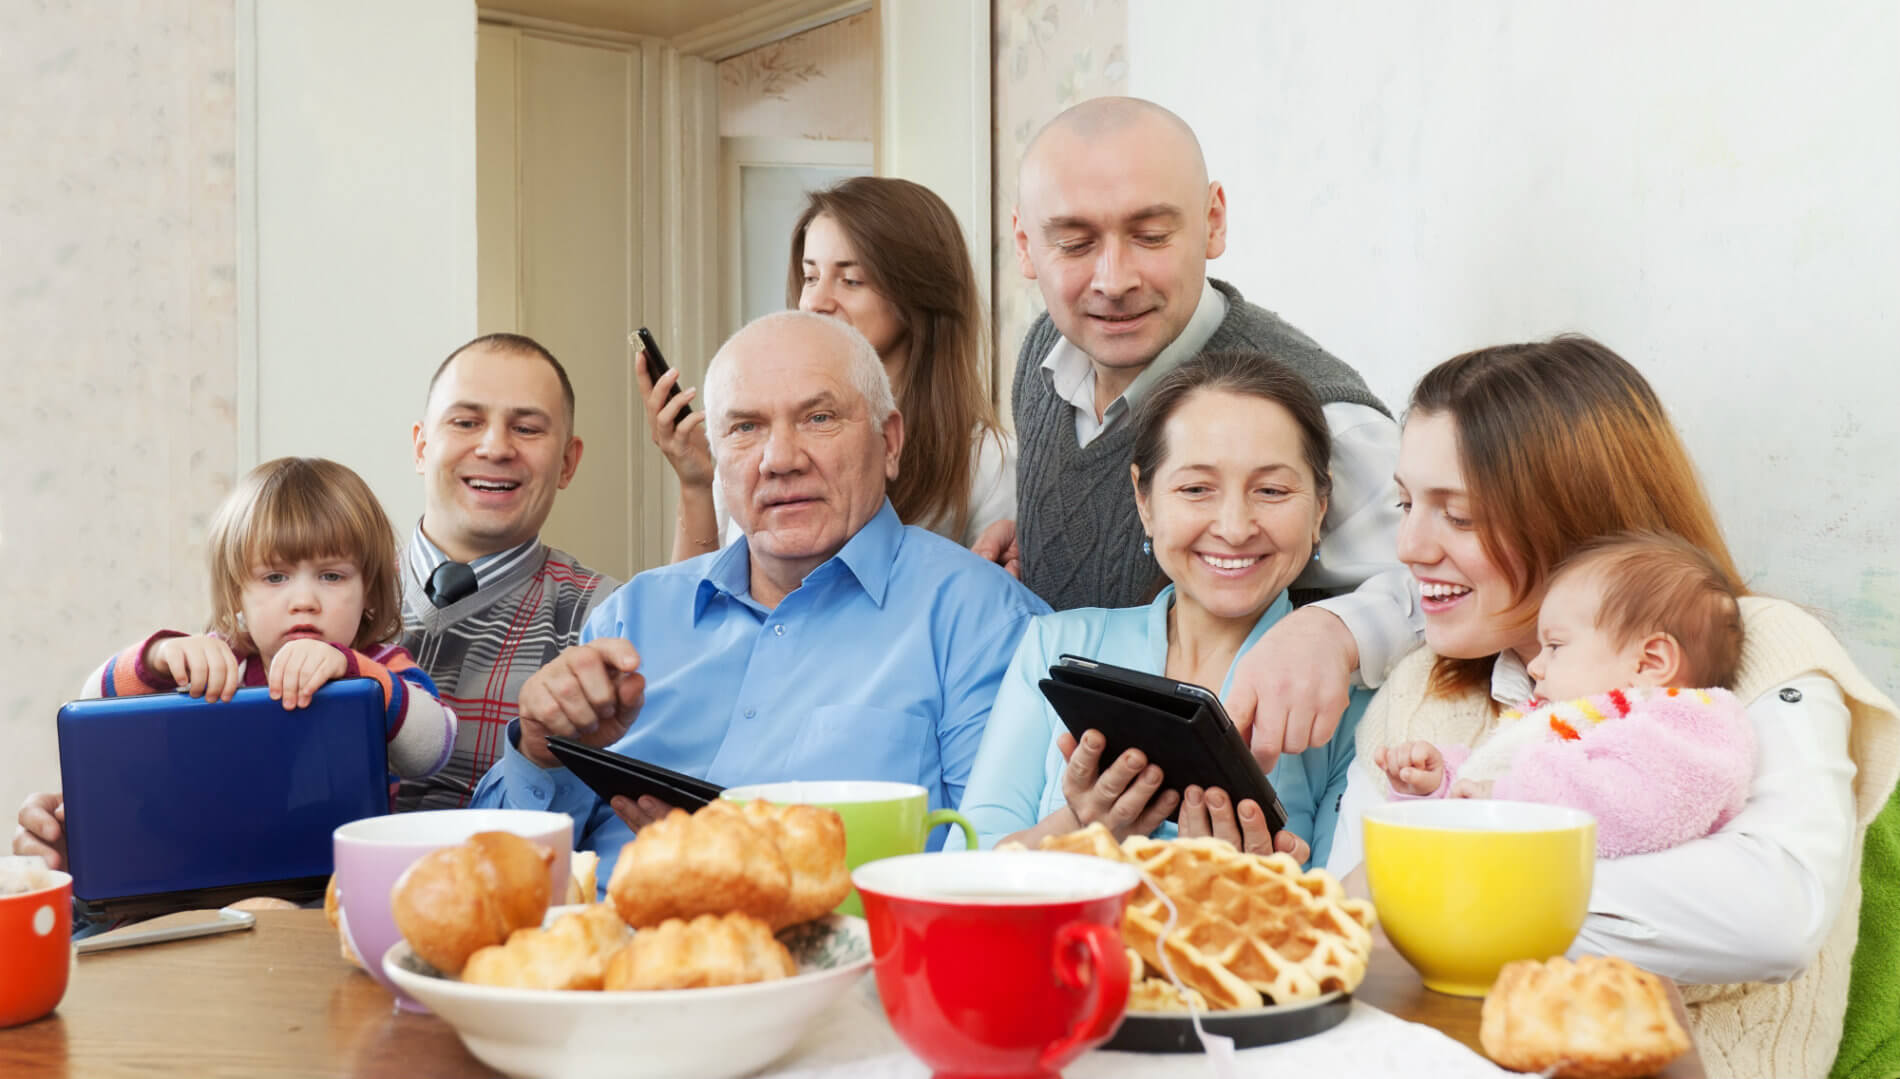 Reaching The Modern Family Cross Device Advertising Is A